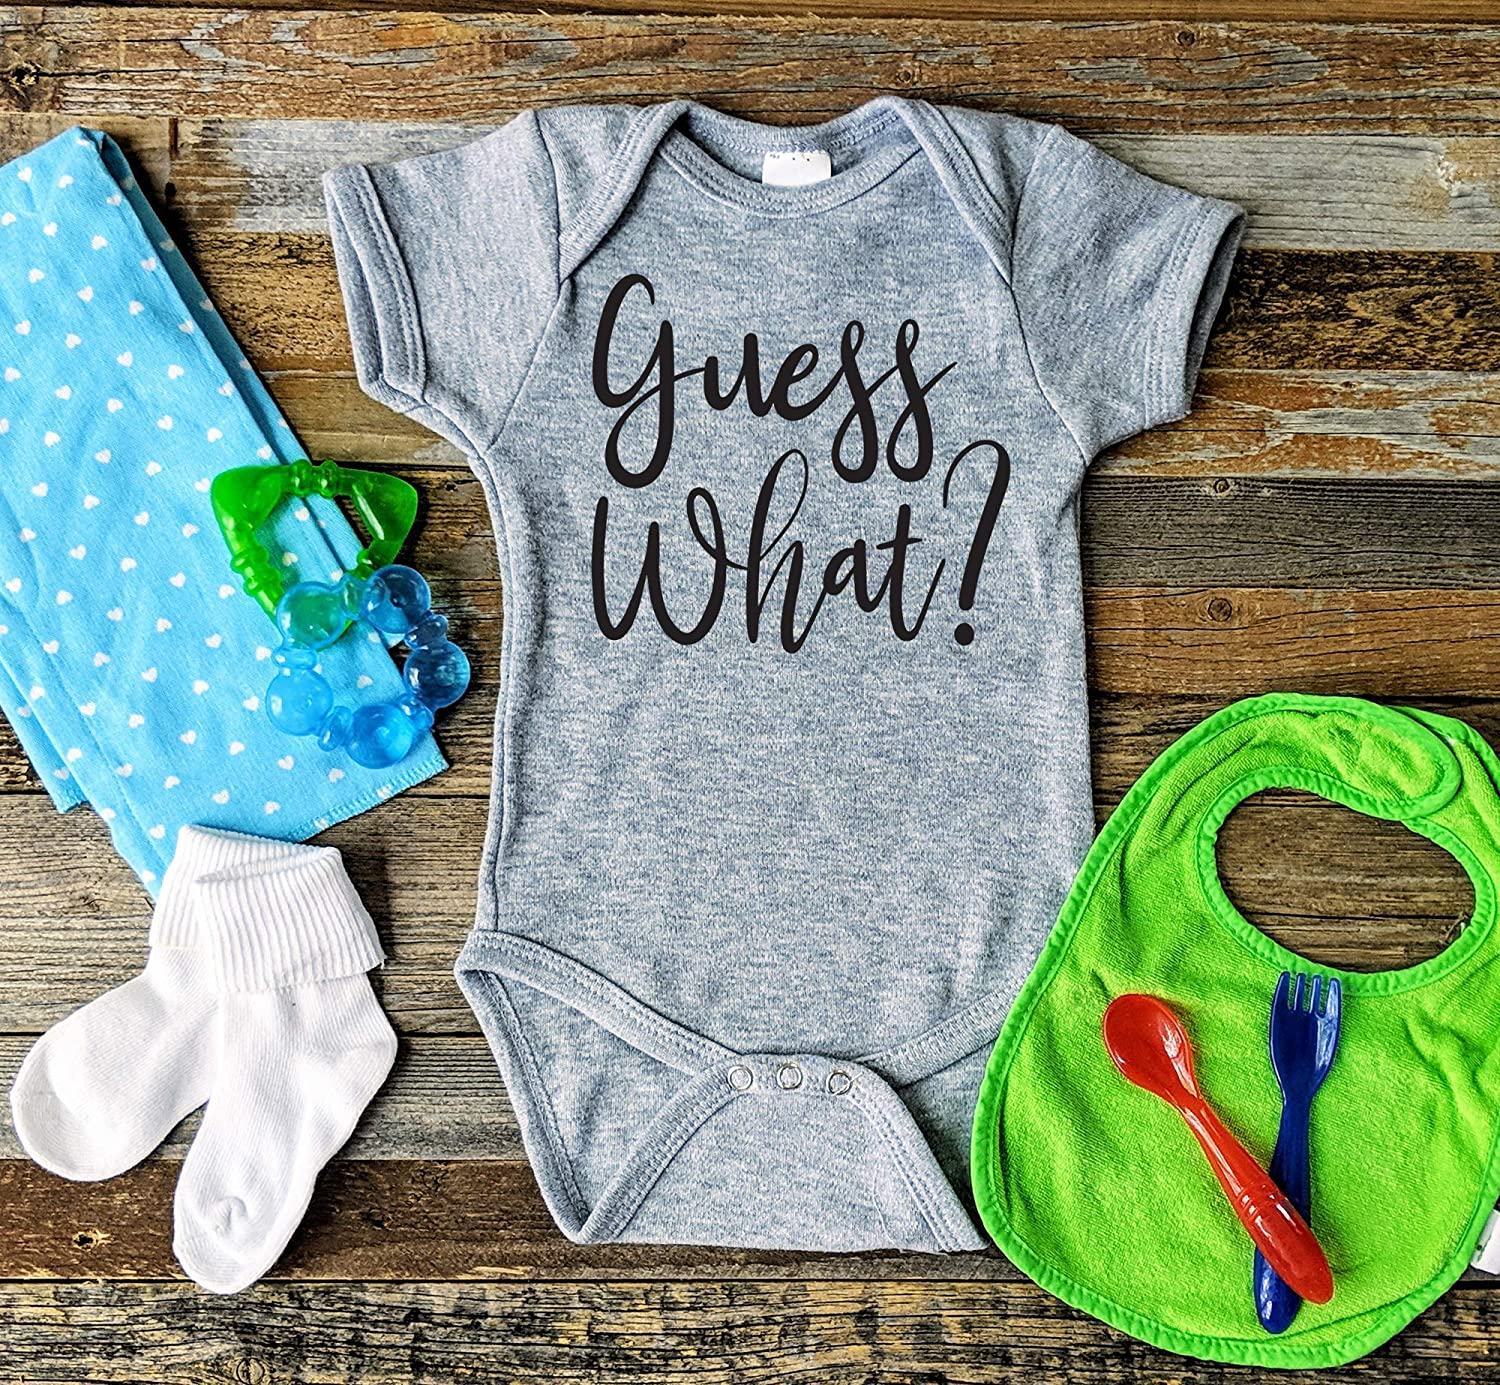 baby pregnancy announcement grandparents guess what? baby reveal Onesies\u00ae pregnancy reveal to husband pregnancy announcement Onesies\u00ae